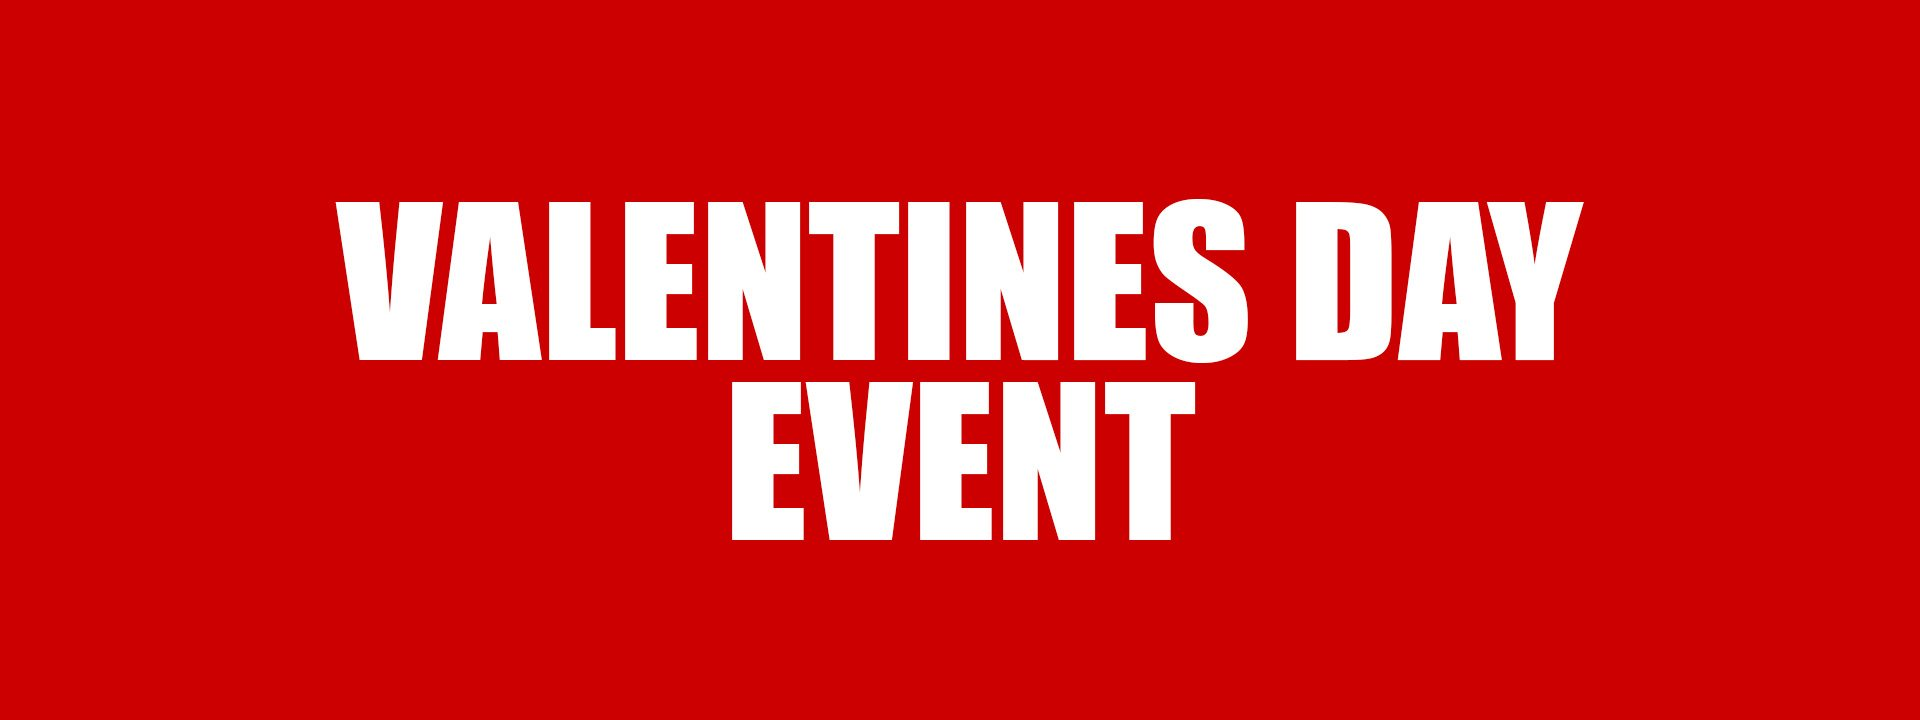 Annual Wine & Dine Your Valentine Fundraising Event